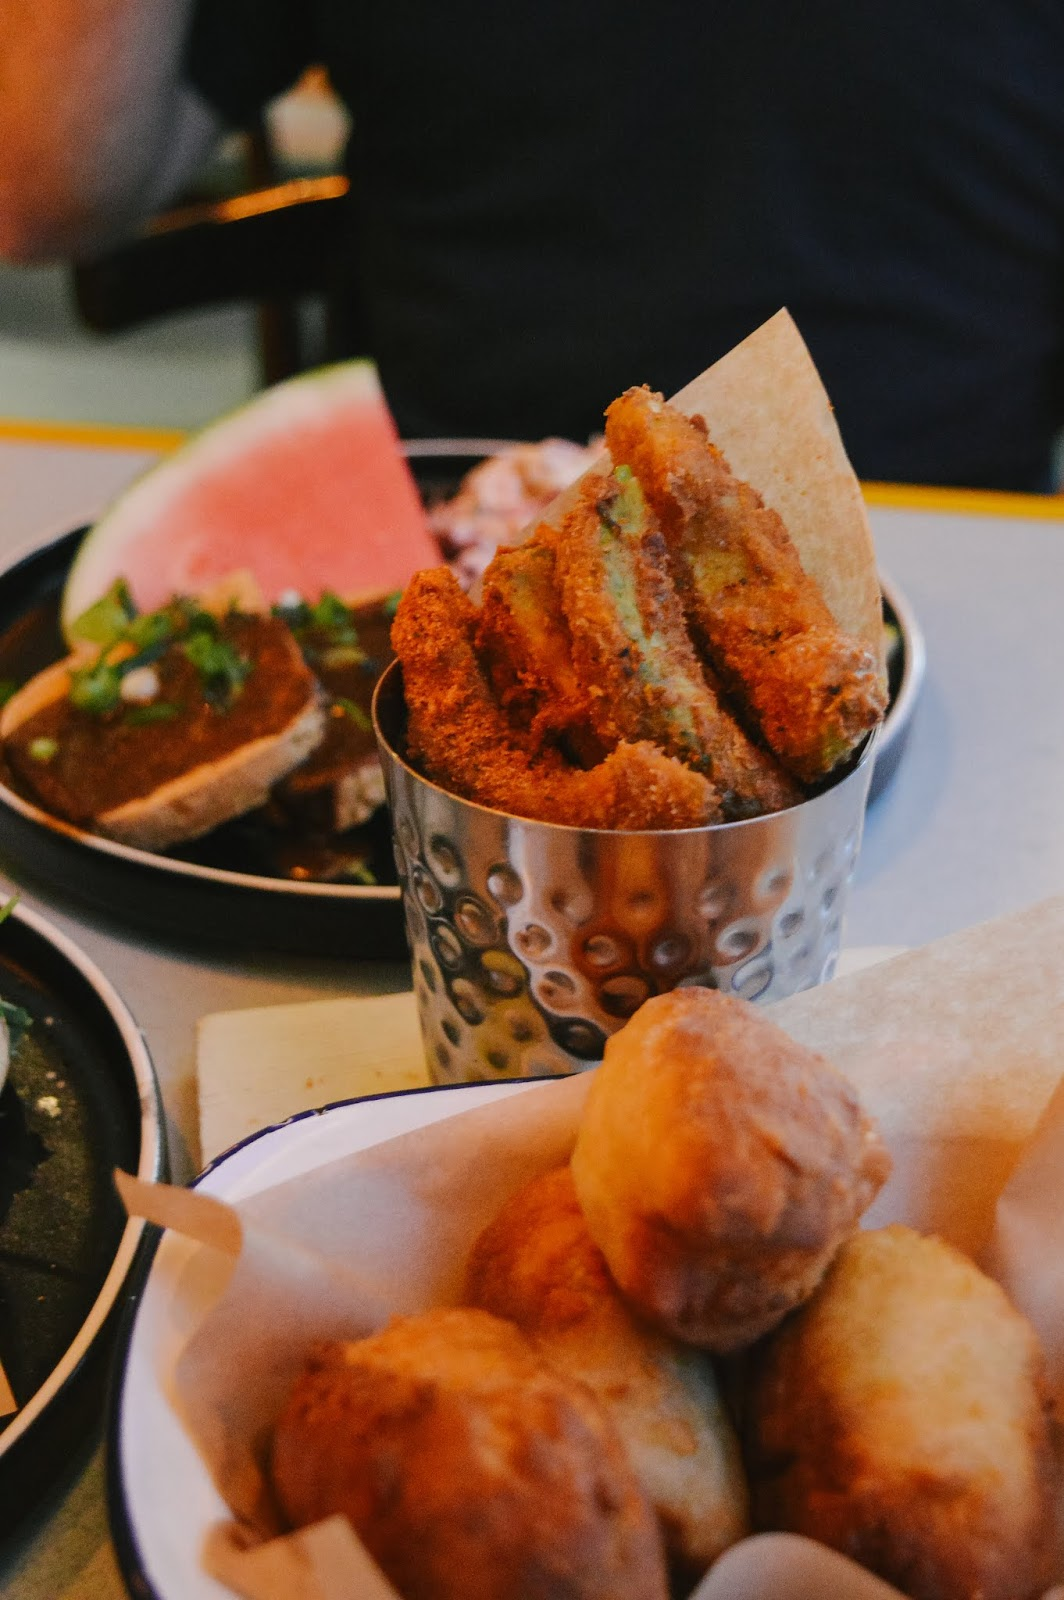 Avocado fries and Caribbean dumplings at Turtle Bay in Winchester